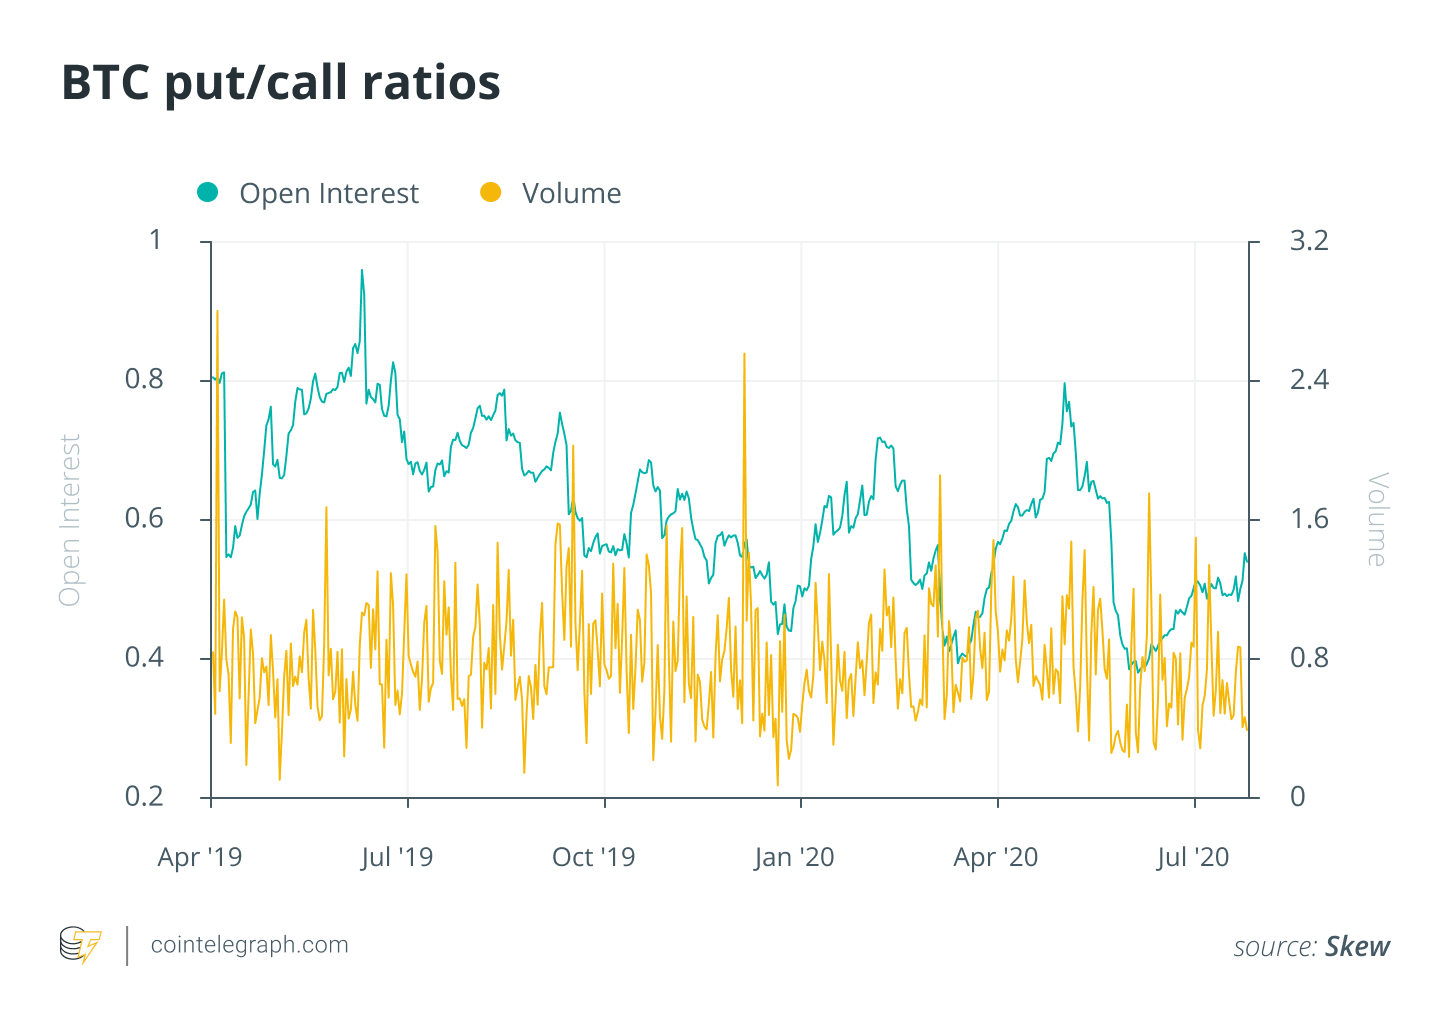 BTC put / call ratios